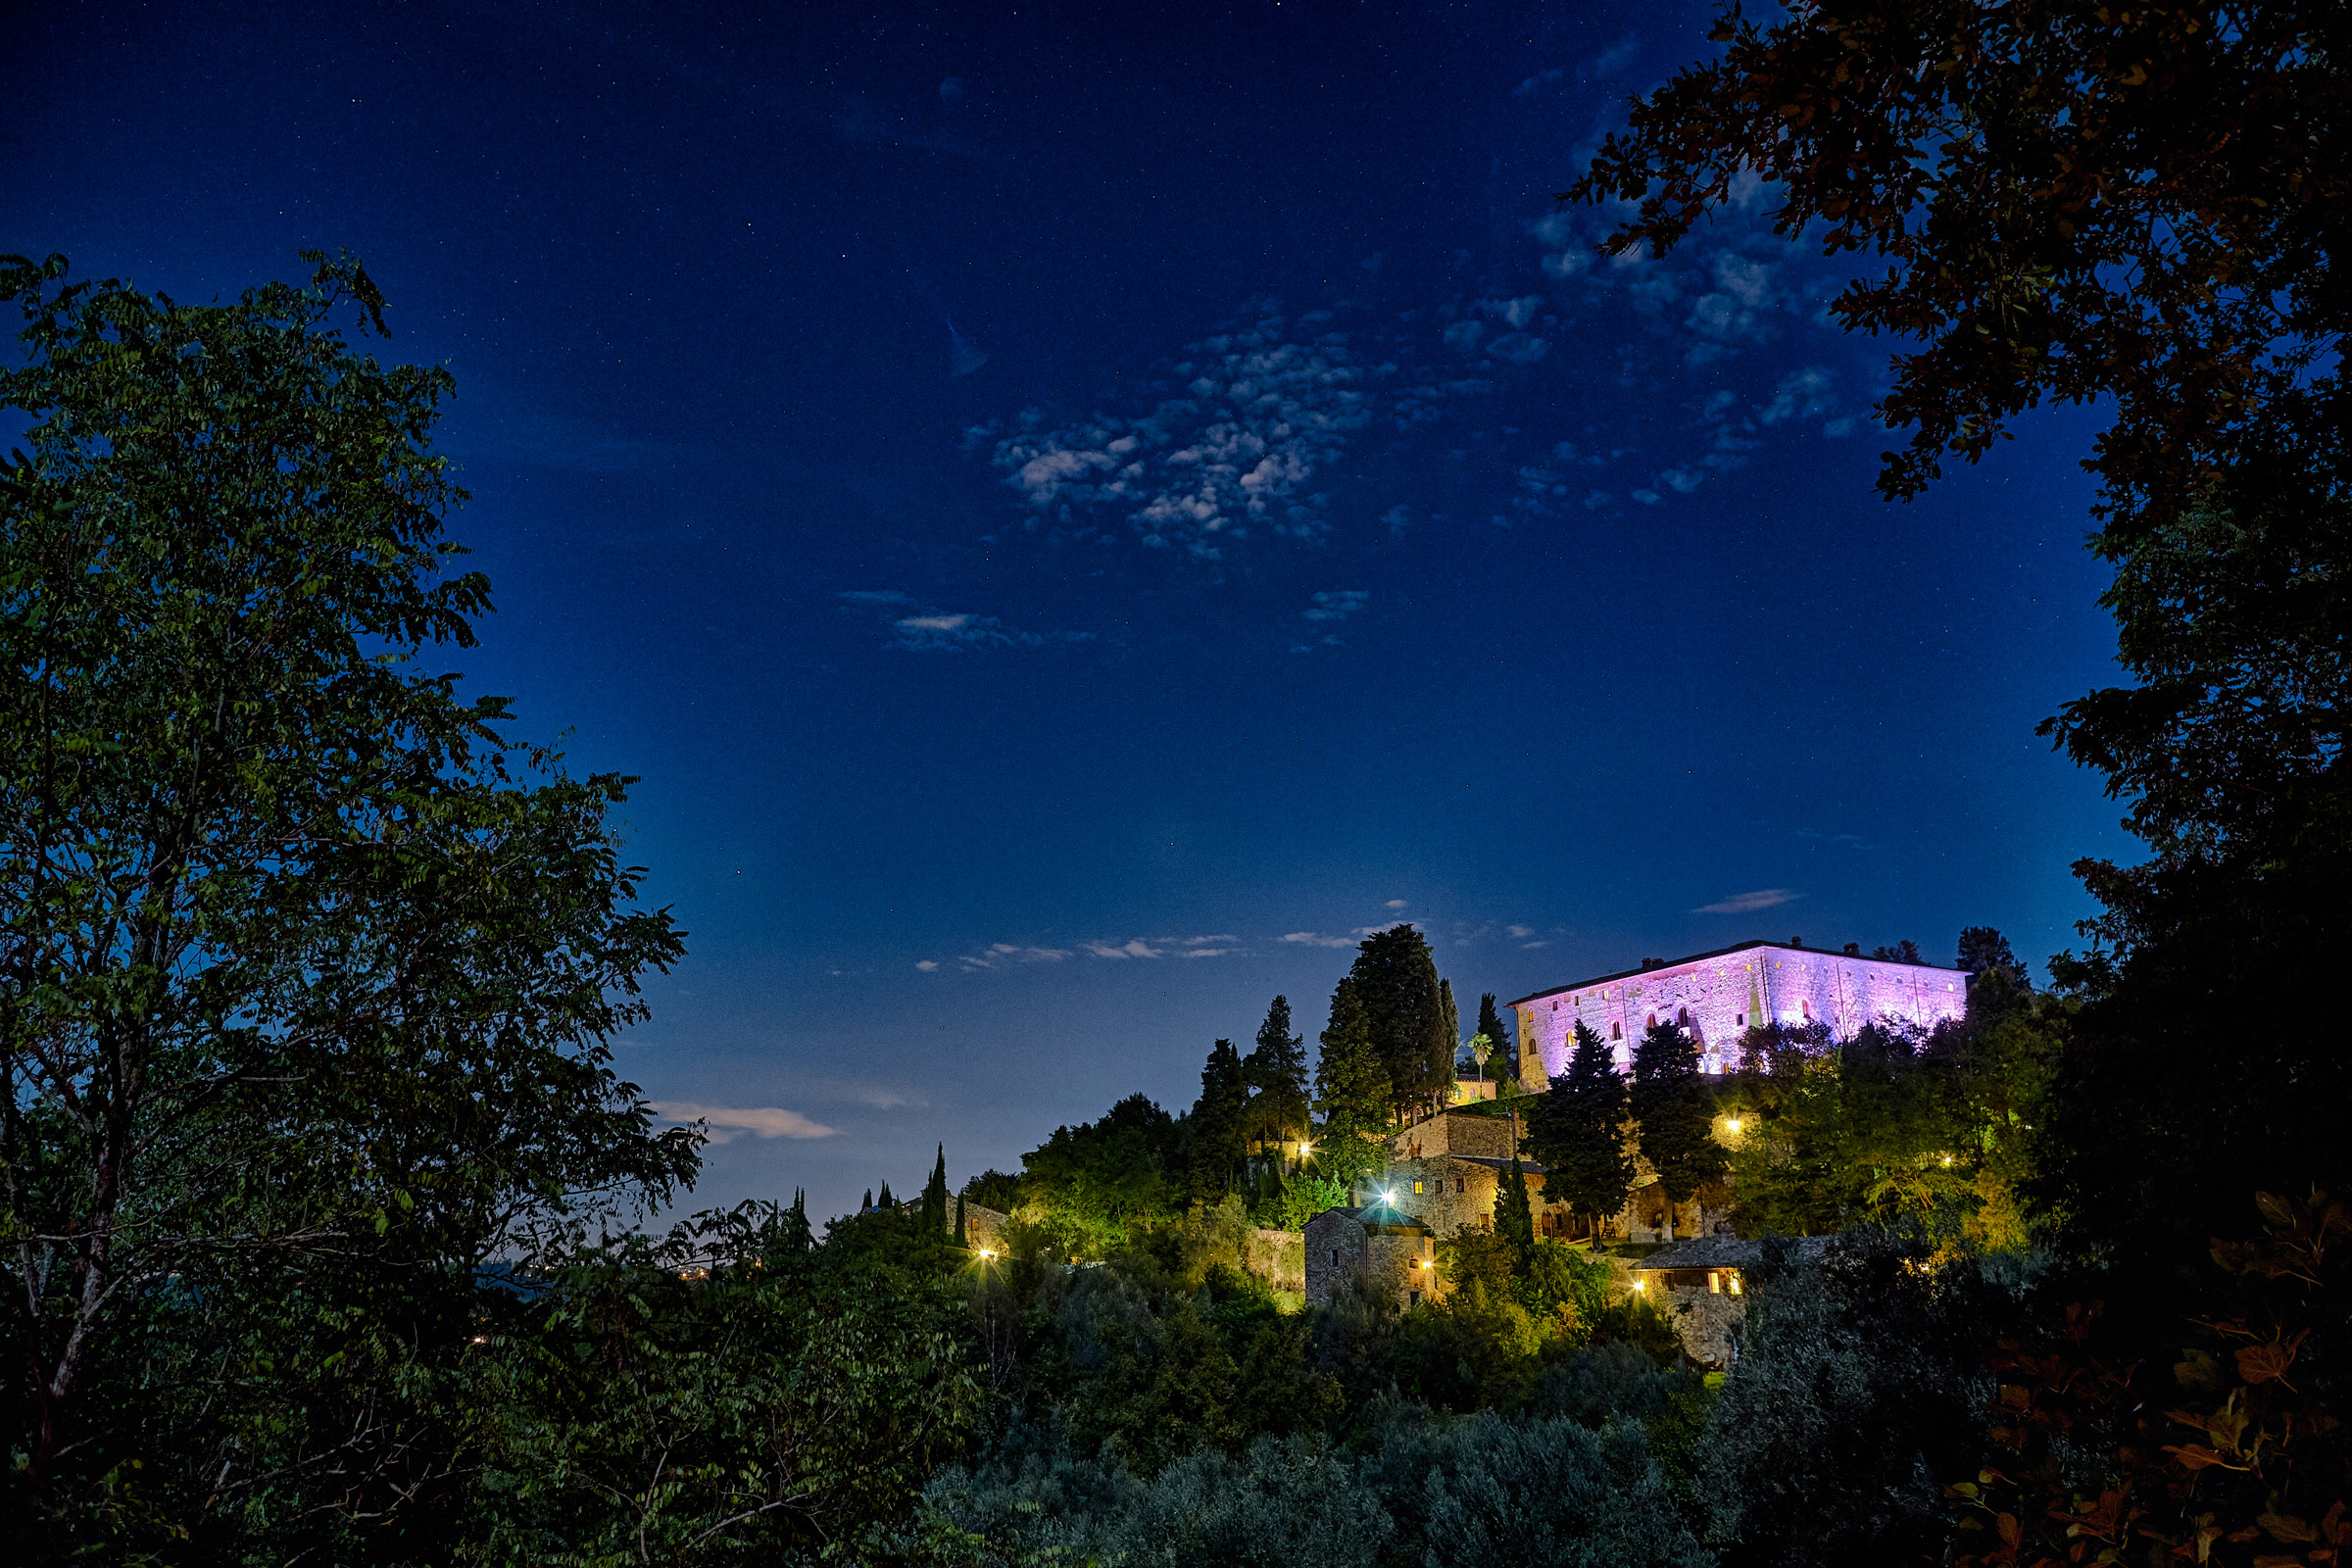 Castle illuminated with pink spots